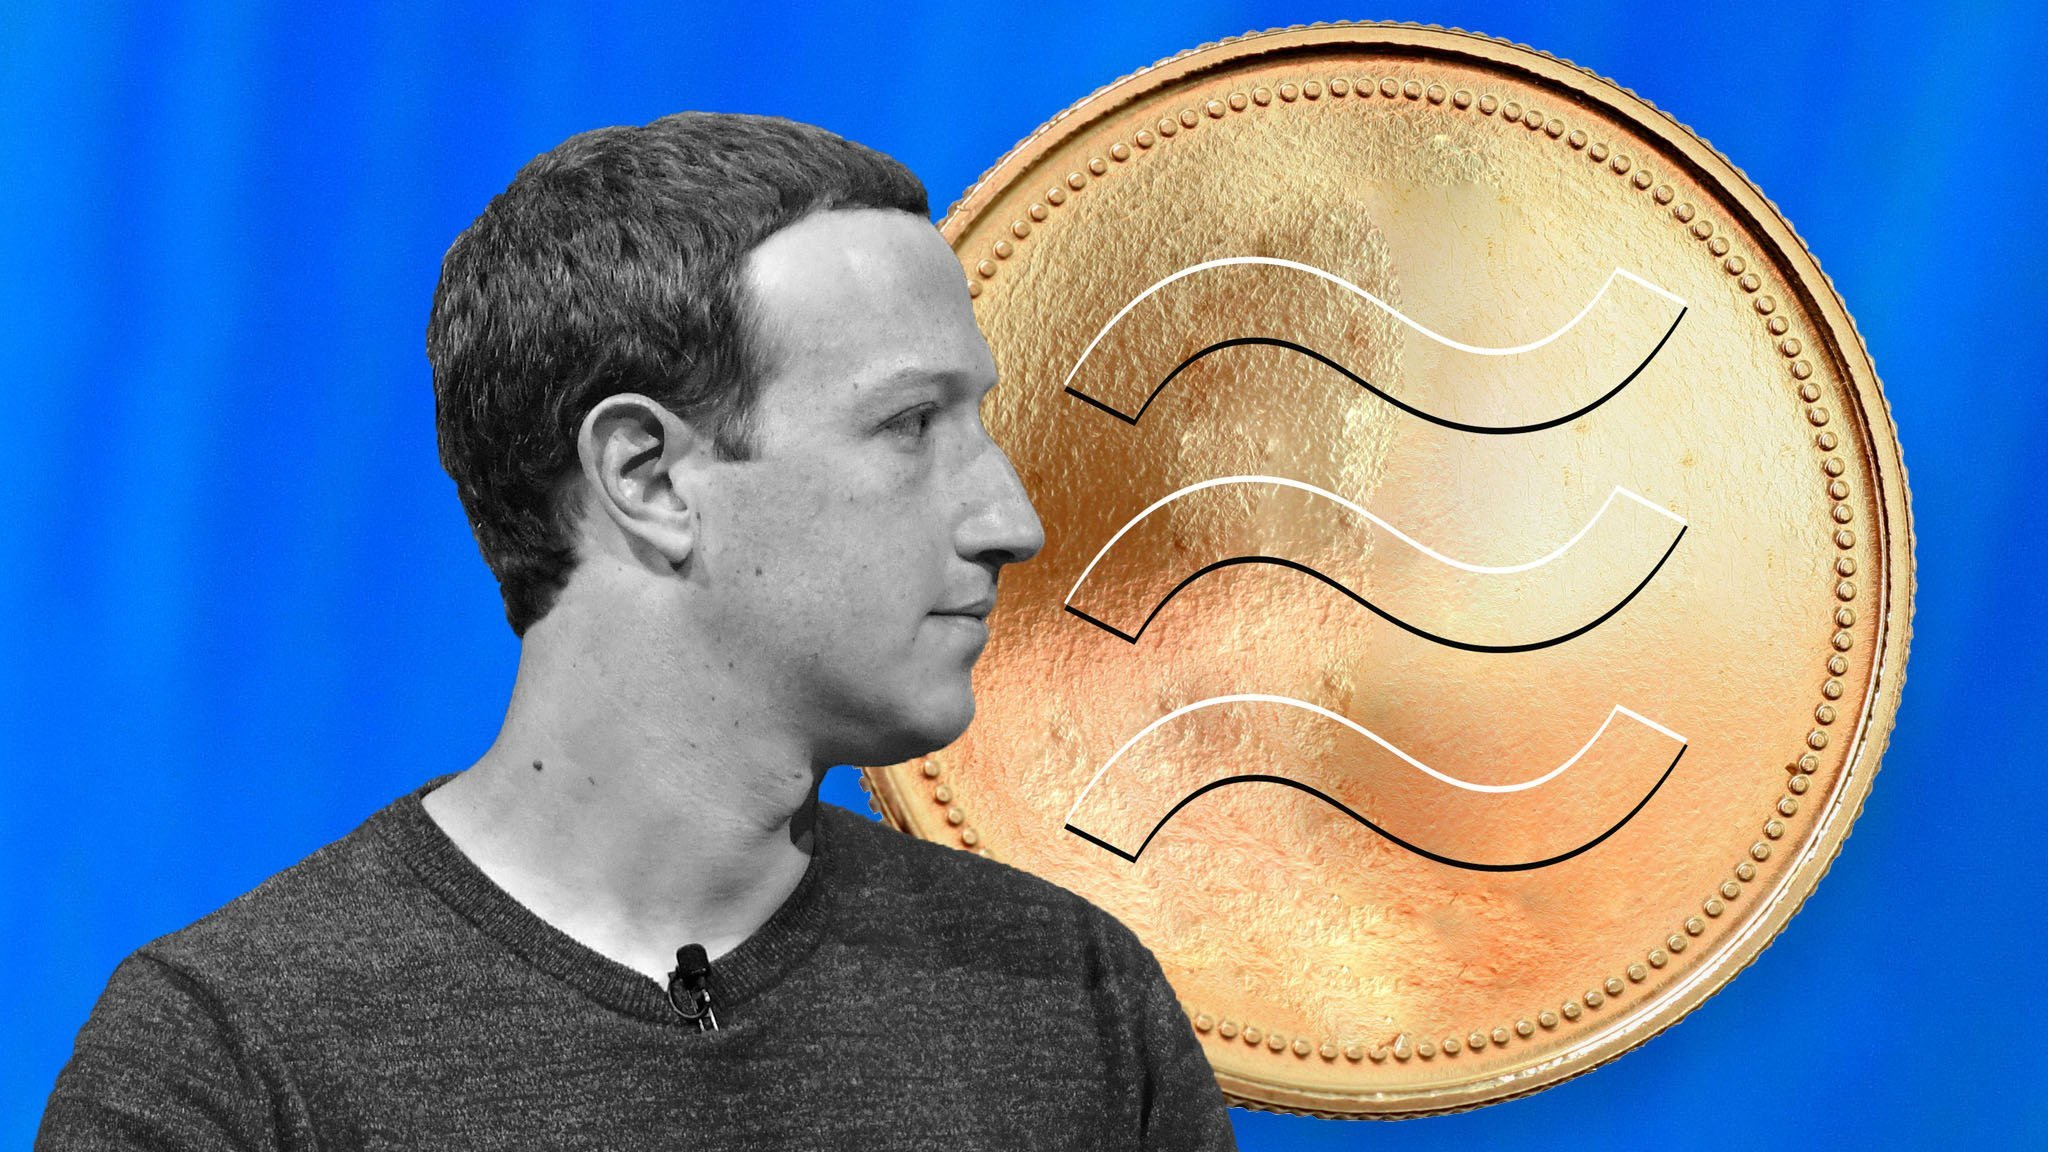 Facebook's Libra backers look to distance themselves from project